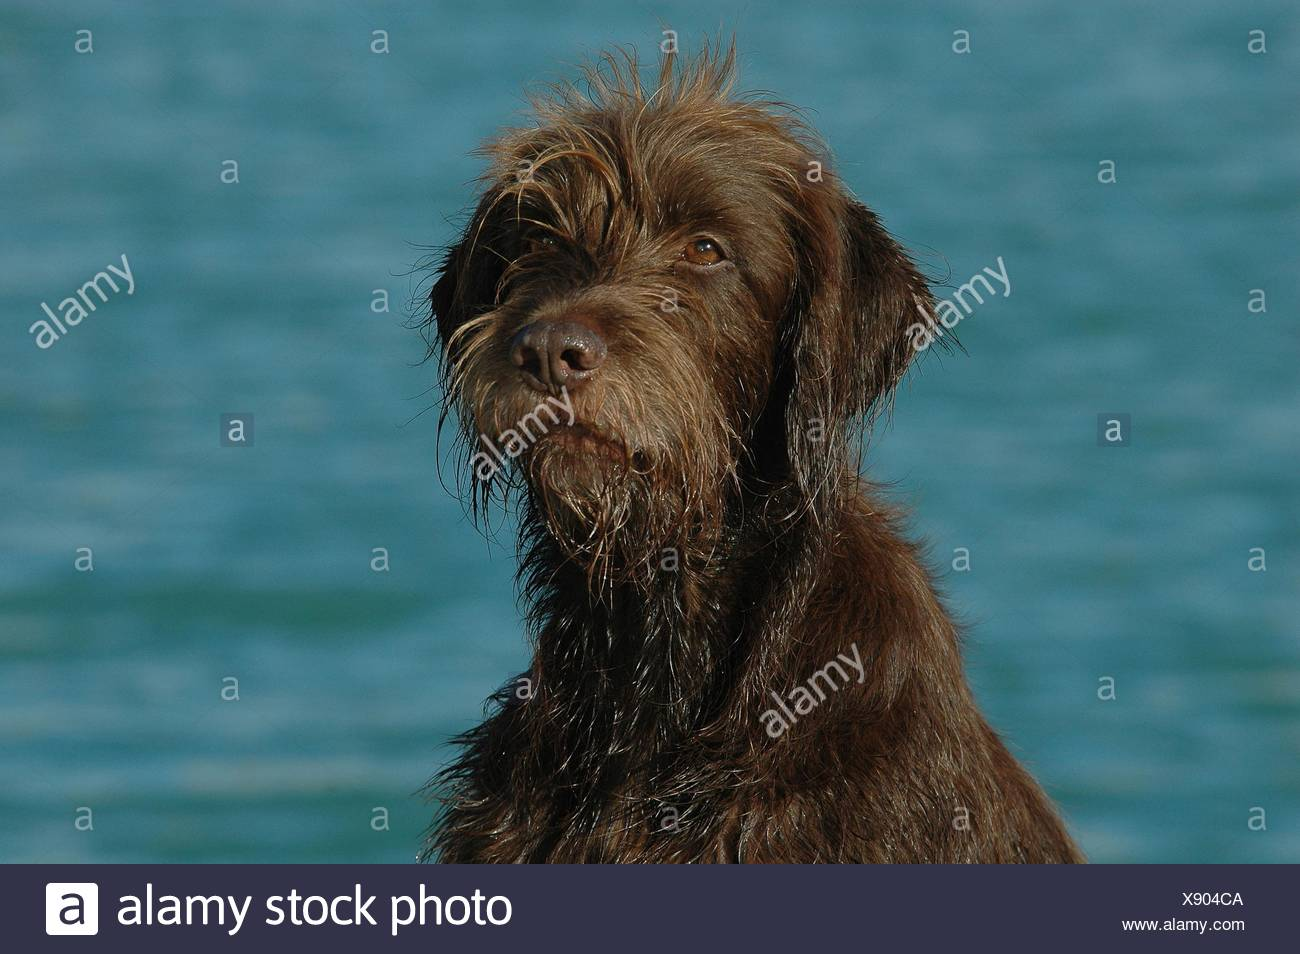 German Wire Haired Pointing Dog Stock Photos & German Wire Haired ...